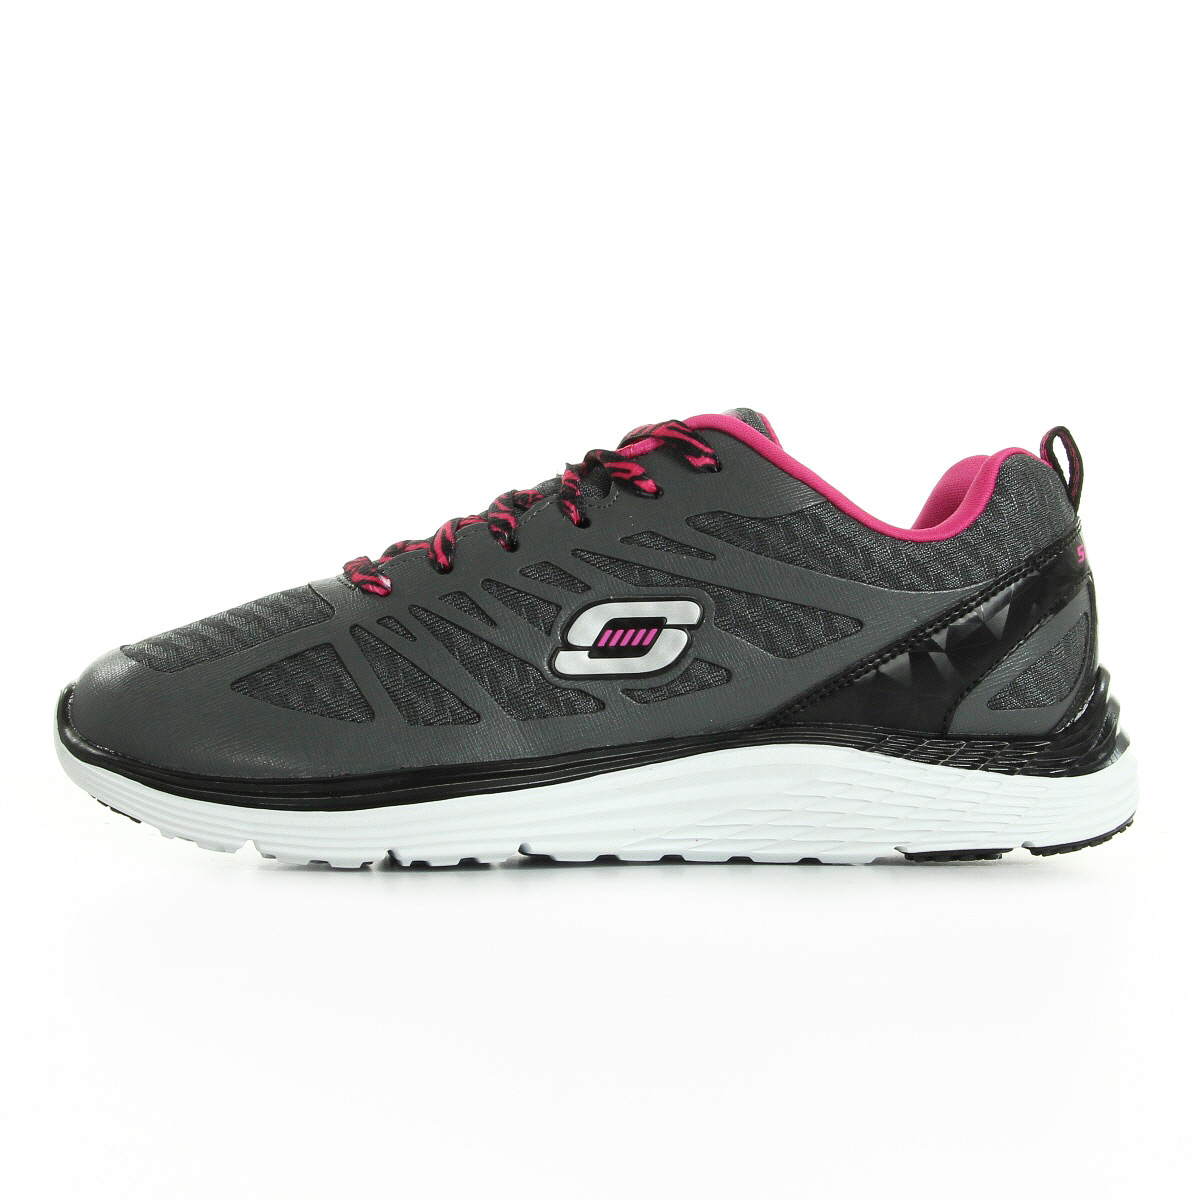 Skechers Skech Air Infinity 12137CCPK, Baskets mode femme